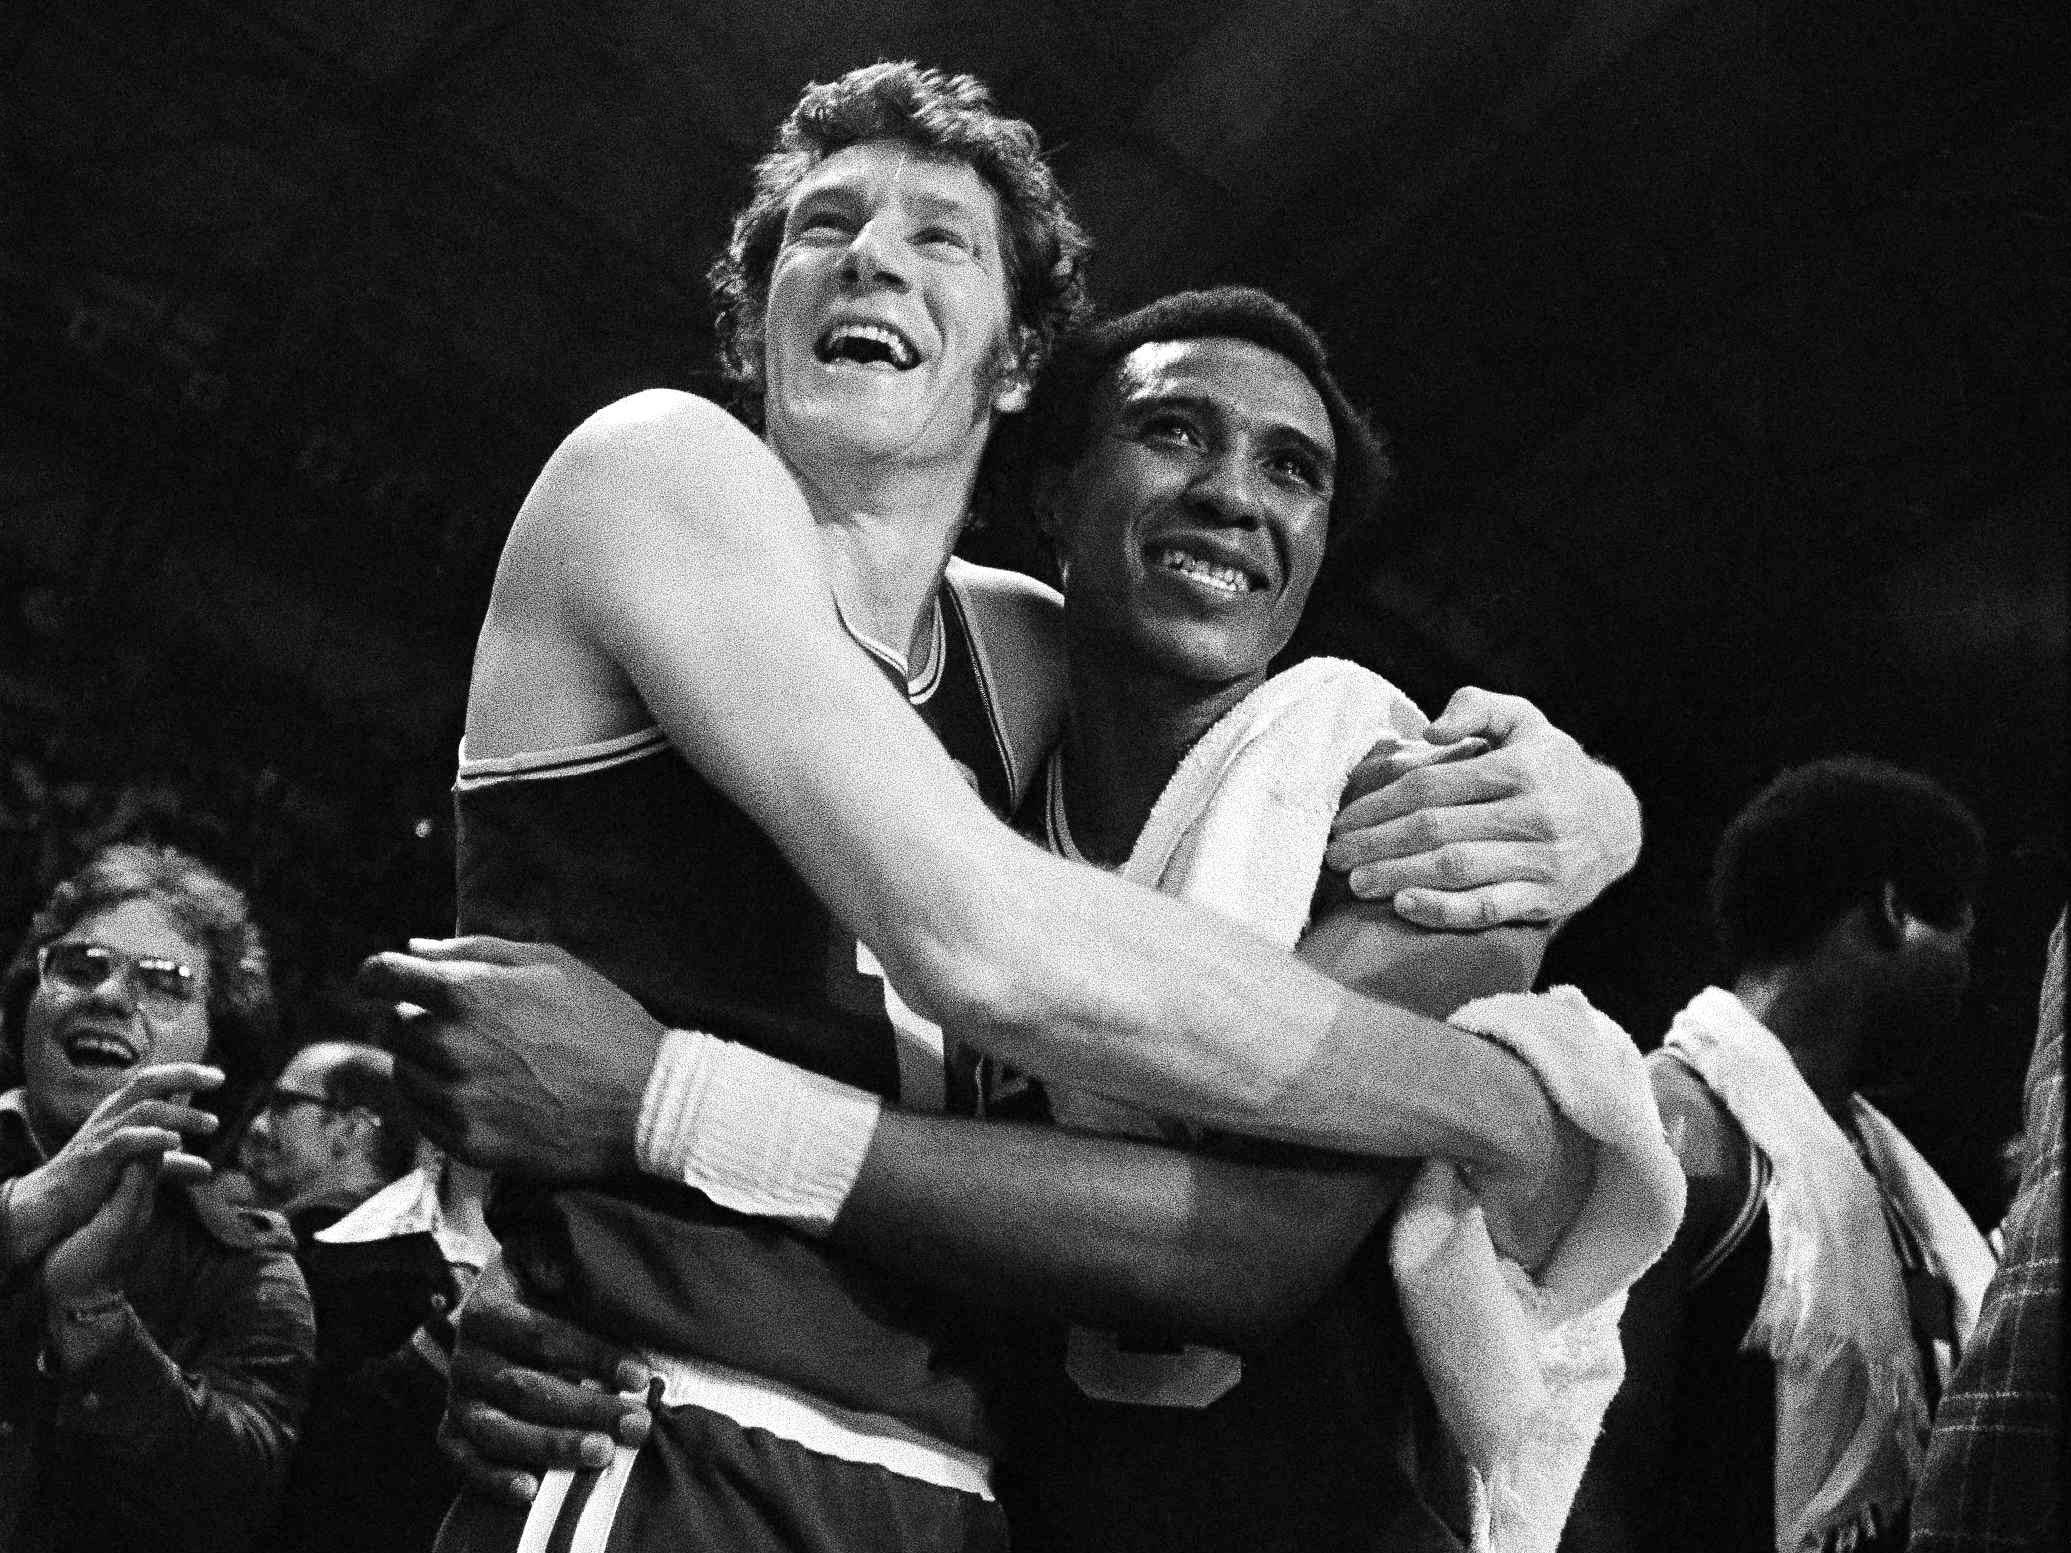 In this May 13, 1974, file photo, Boston Celtics' John Havlicek, left, and Jo-Jo White celebrate defeating the Milwaukee Bucks, 102-87 to win the NBA Championship, in Milwaukee, Wisc. The Celtics said Havlicek died Thursday, April 25, 2019, in Jupiter, Florida. He was 79. The cause of death wasn't immediately available.